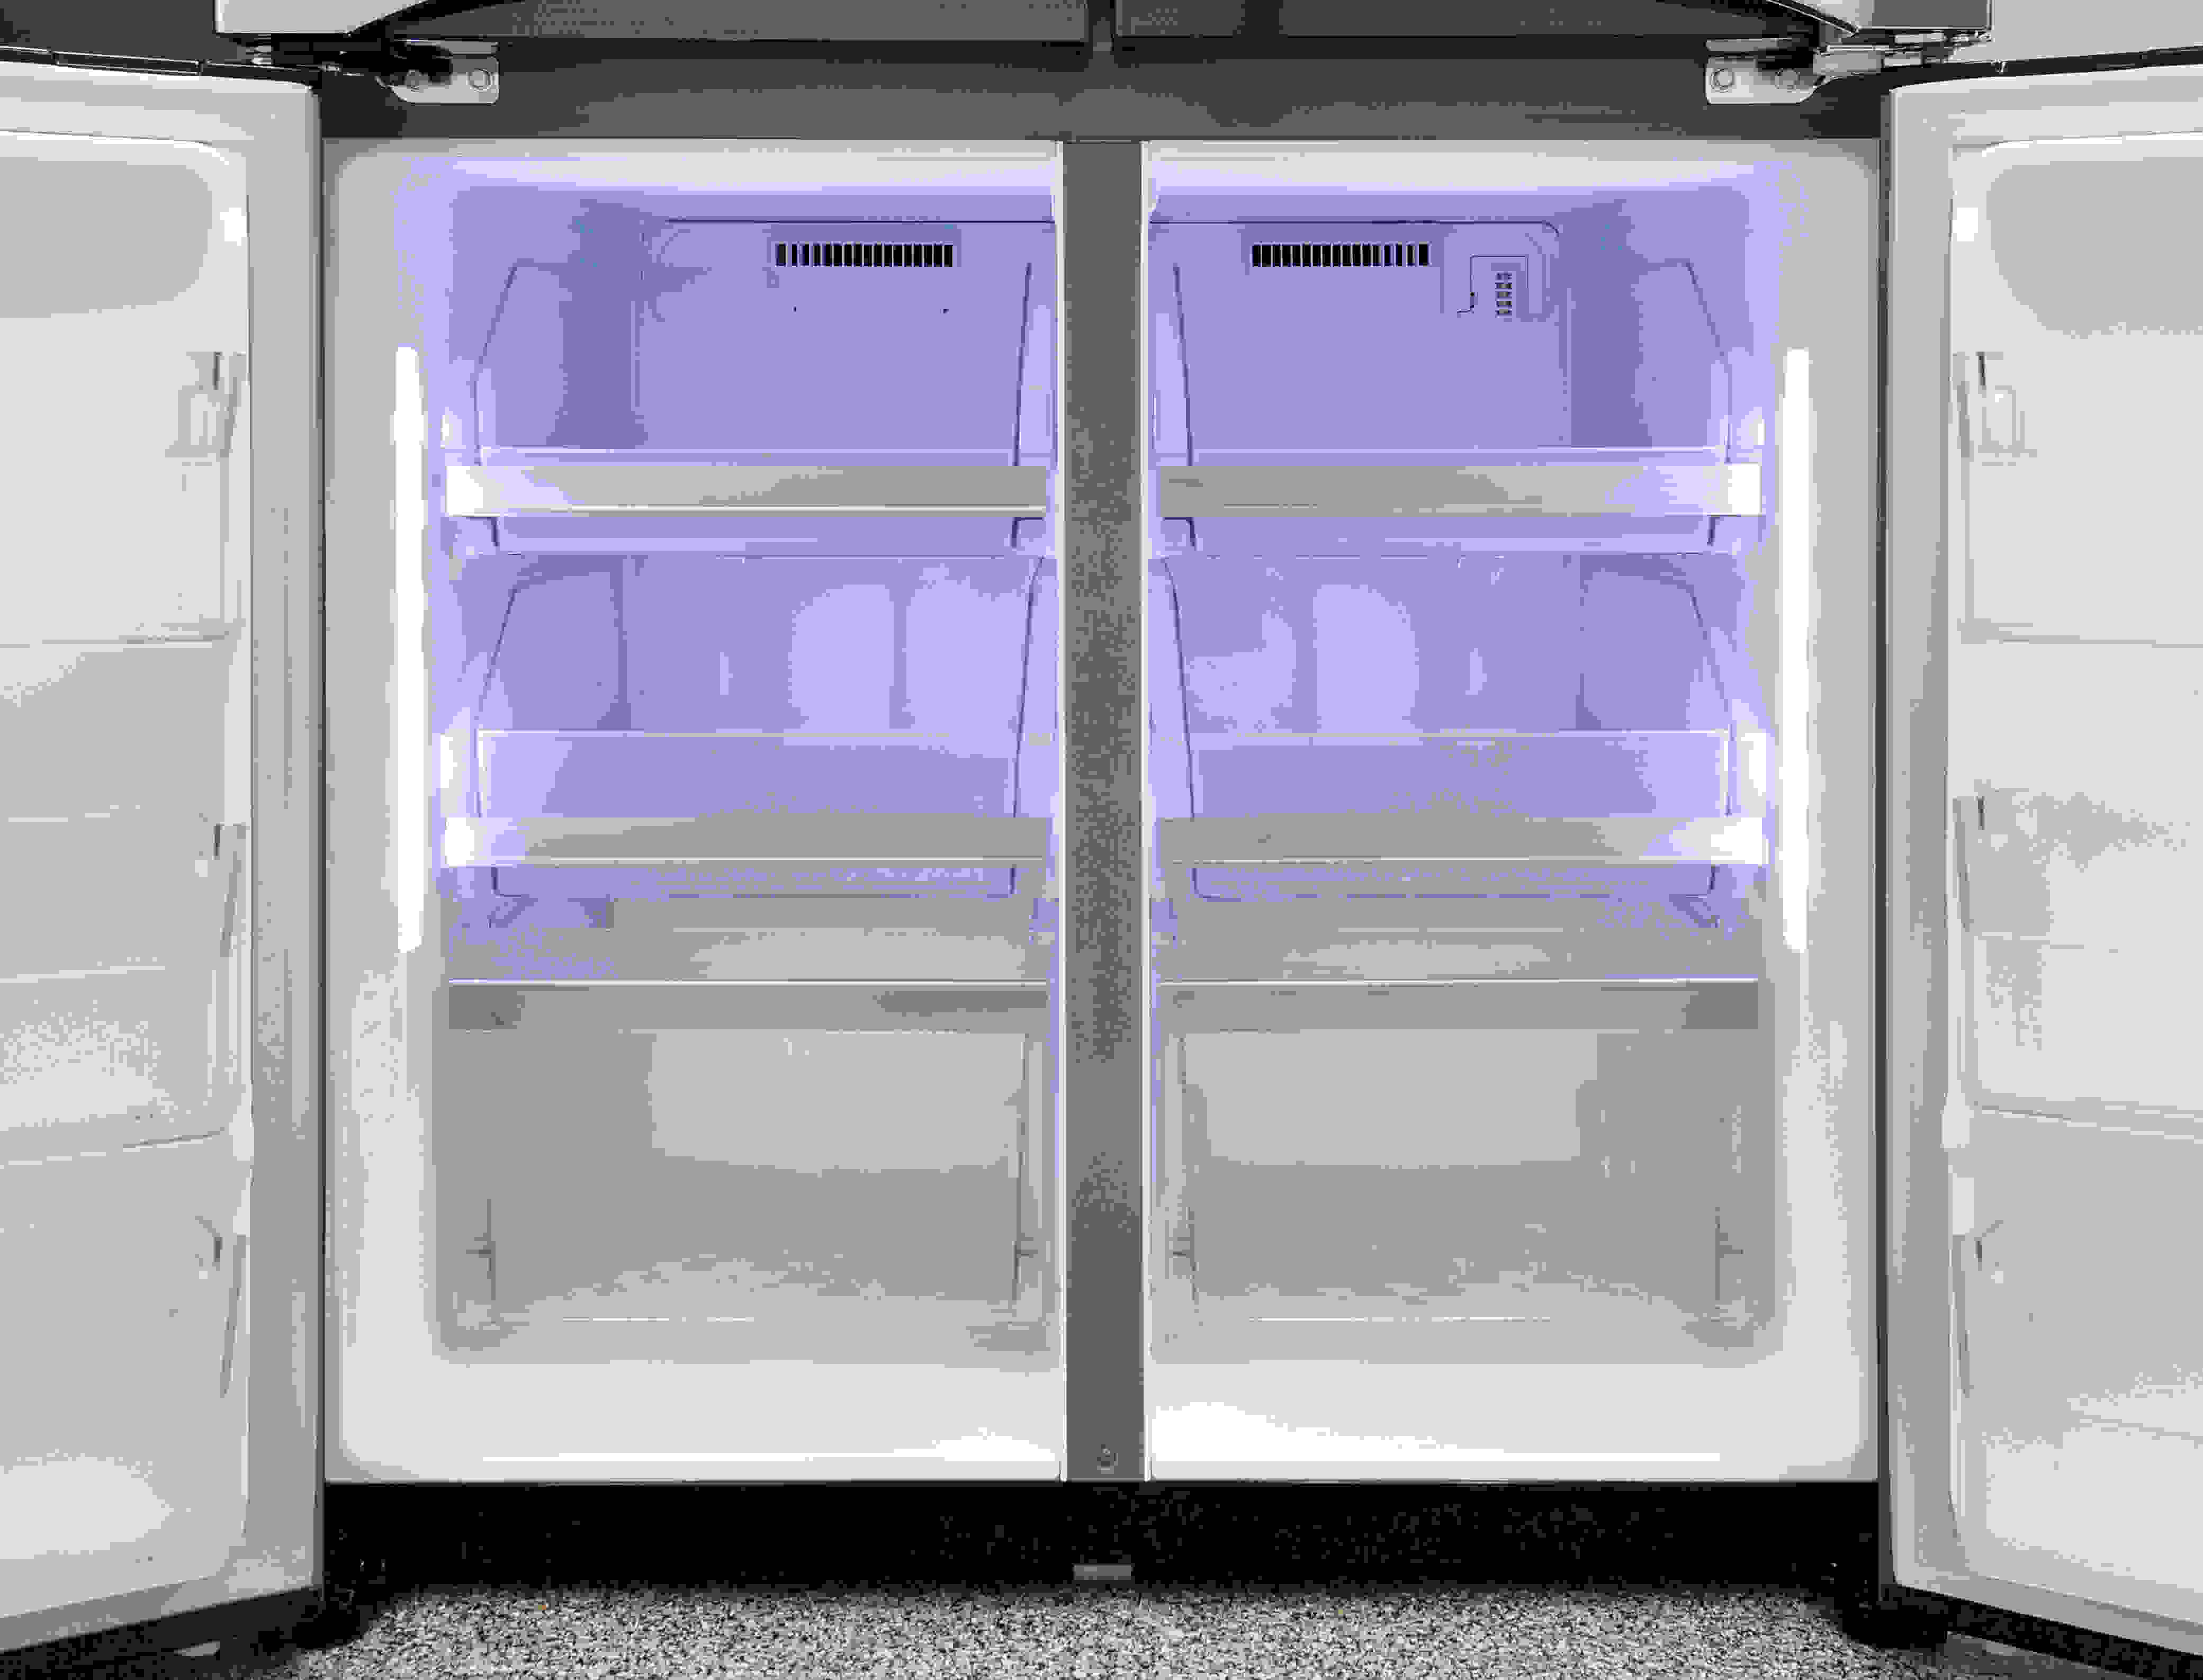 The LG LPXS30866D has matching freezer compartments, but neither of them offers adjustable temperature settings.